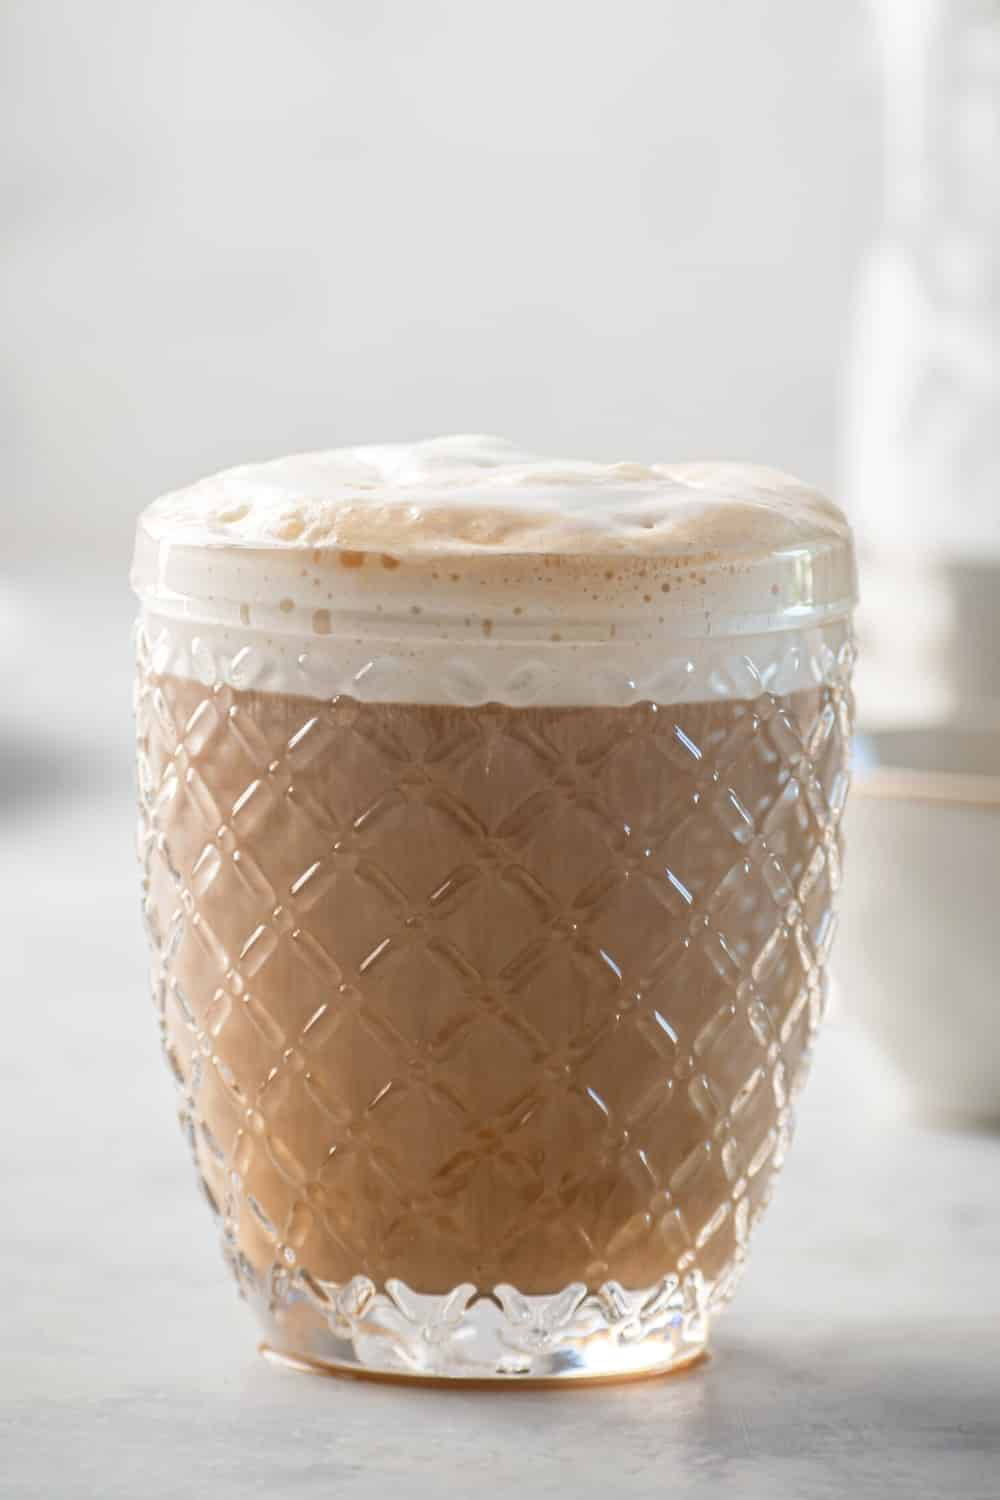 A glass of iced coffee with sweet cream cold foam on top and a gray counter.